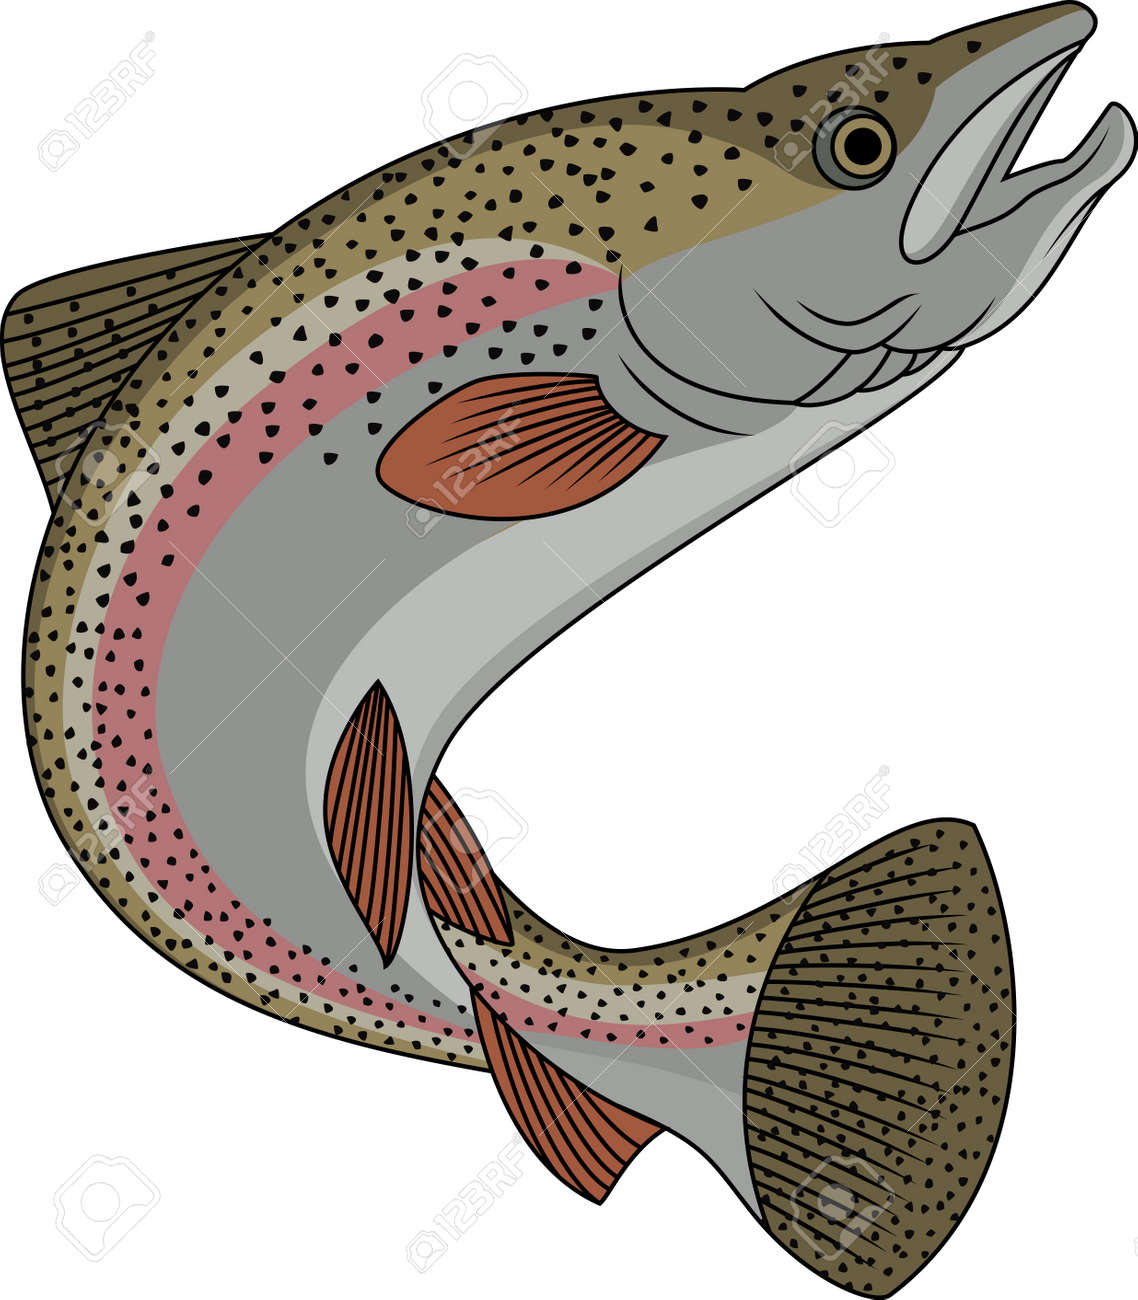 Trout fish Stock Vector - 13496368